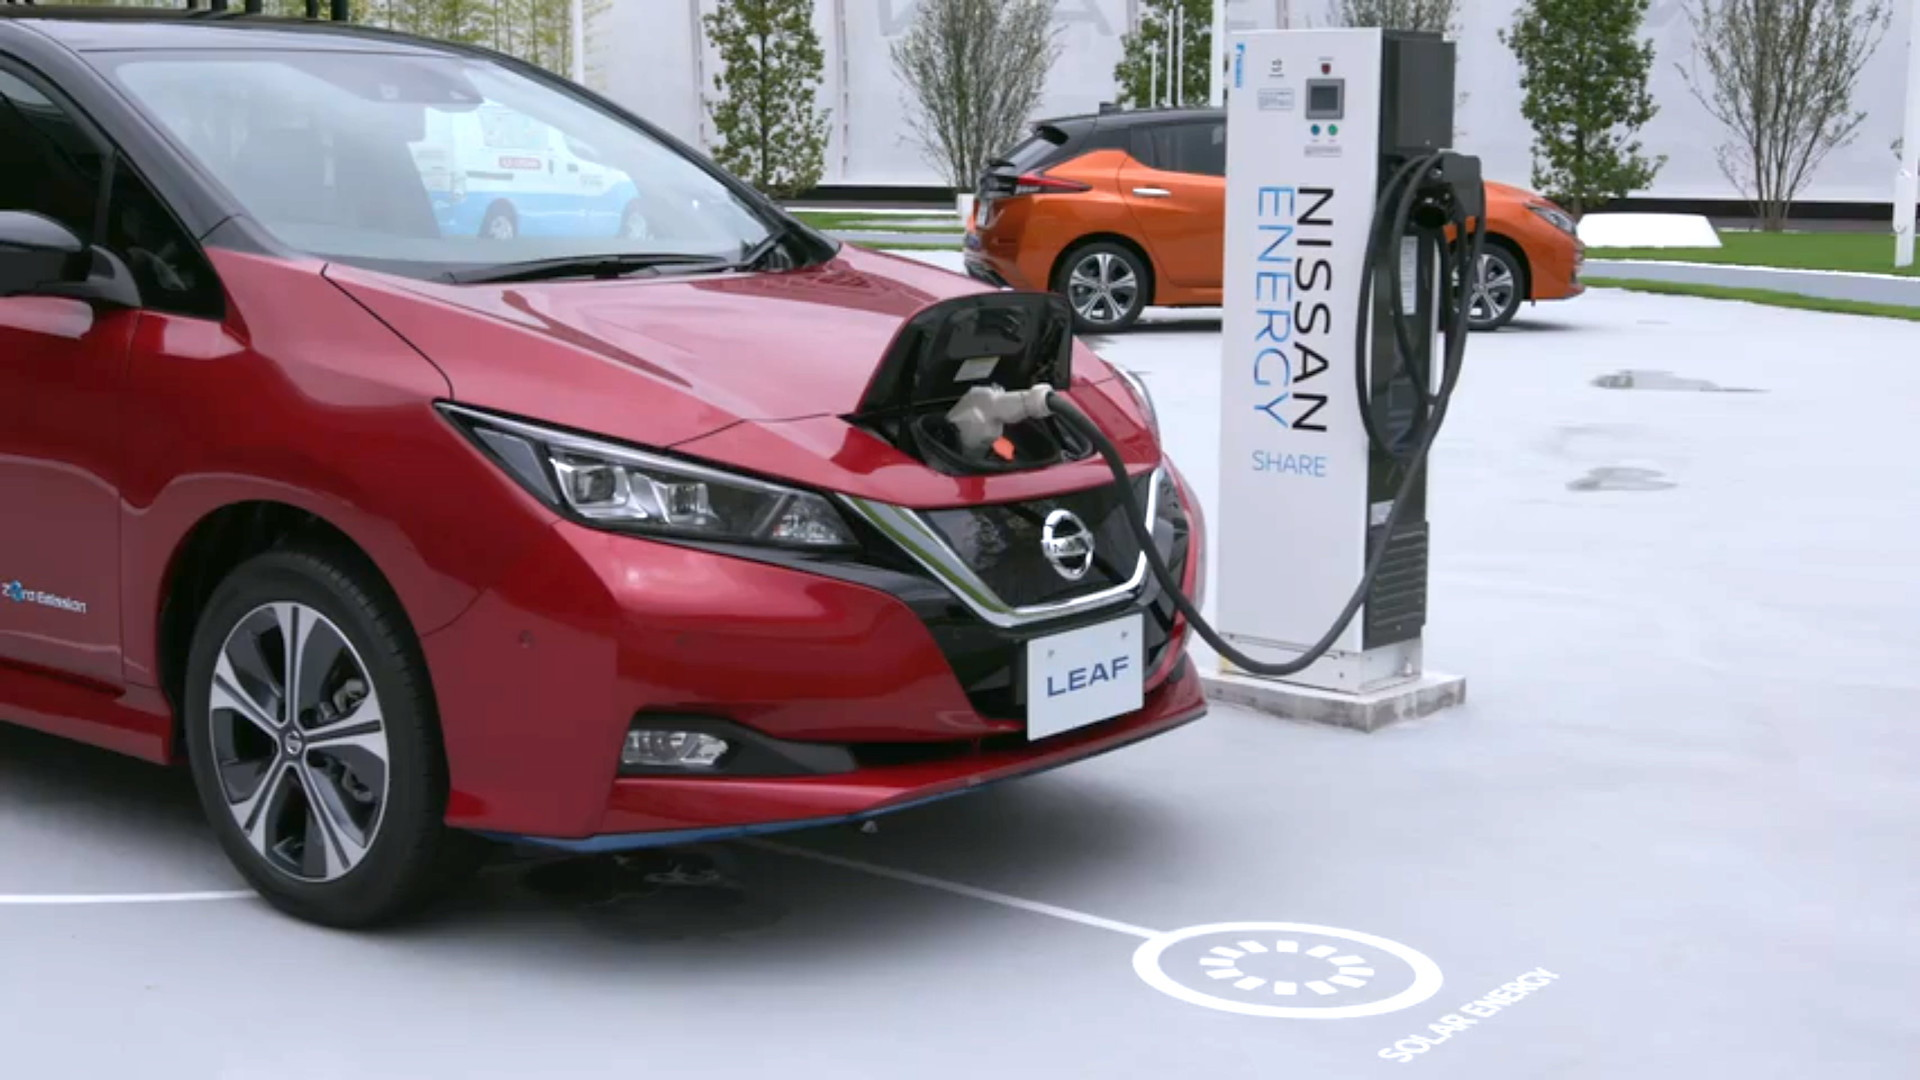 Nissan Energy Share with Nissan Leaf